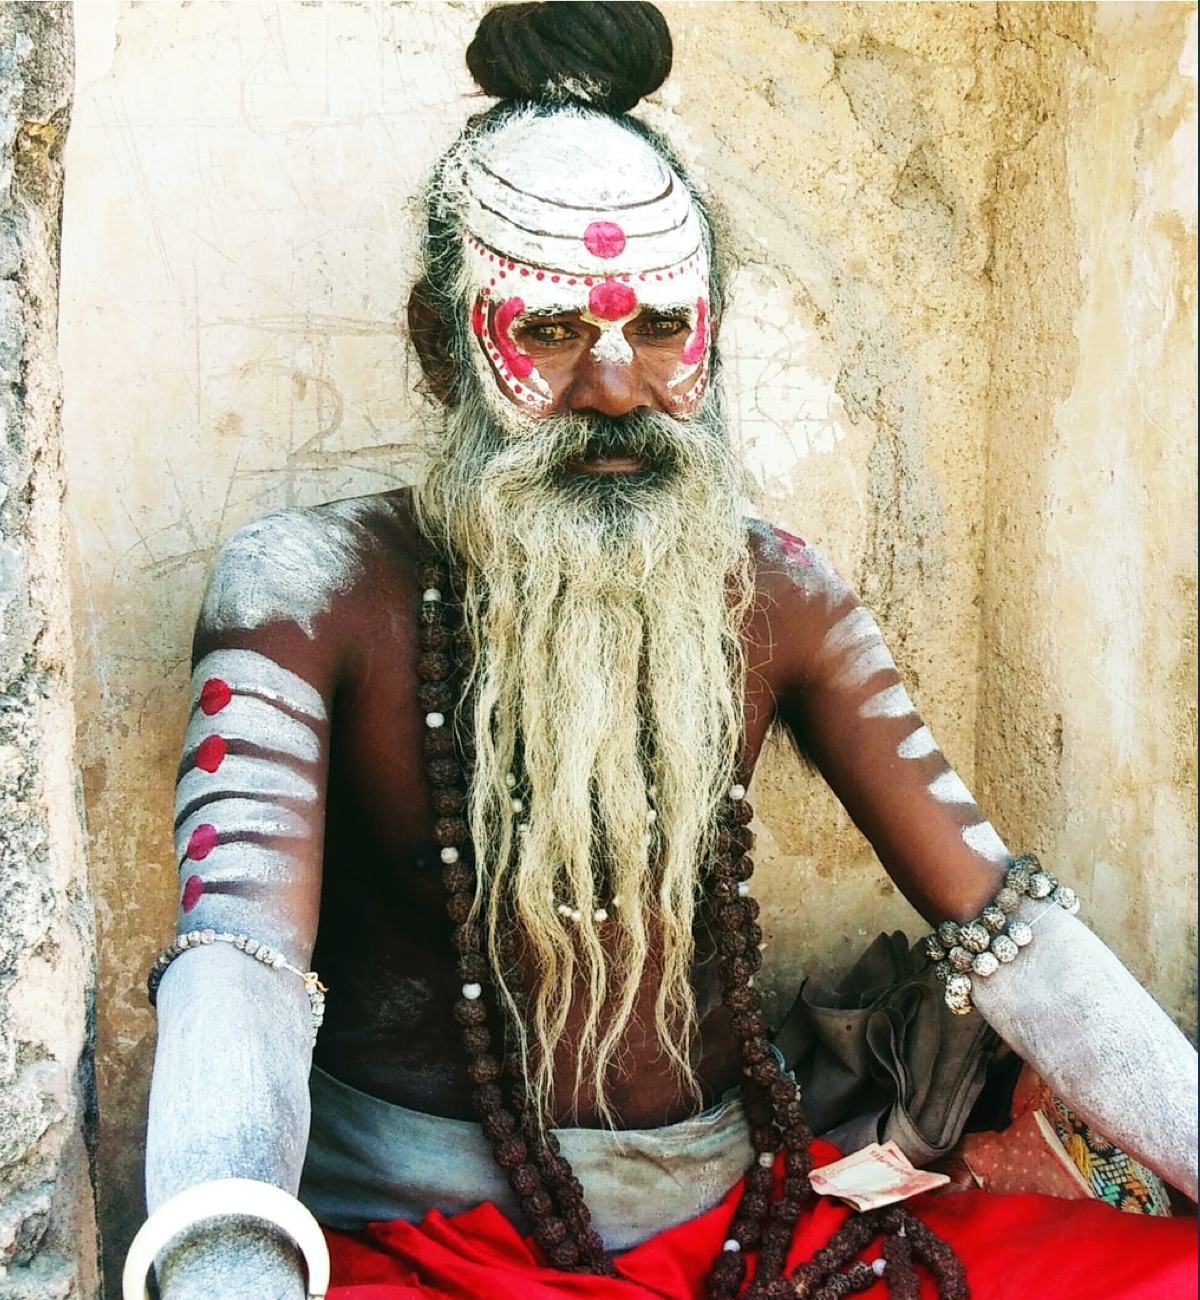 Man with traditional face paint.